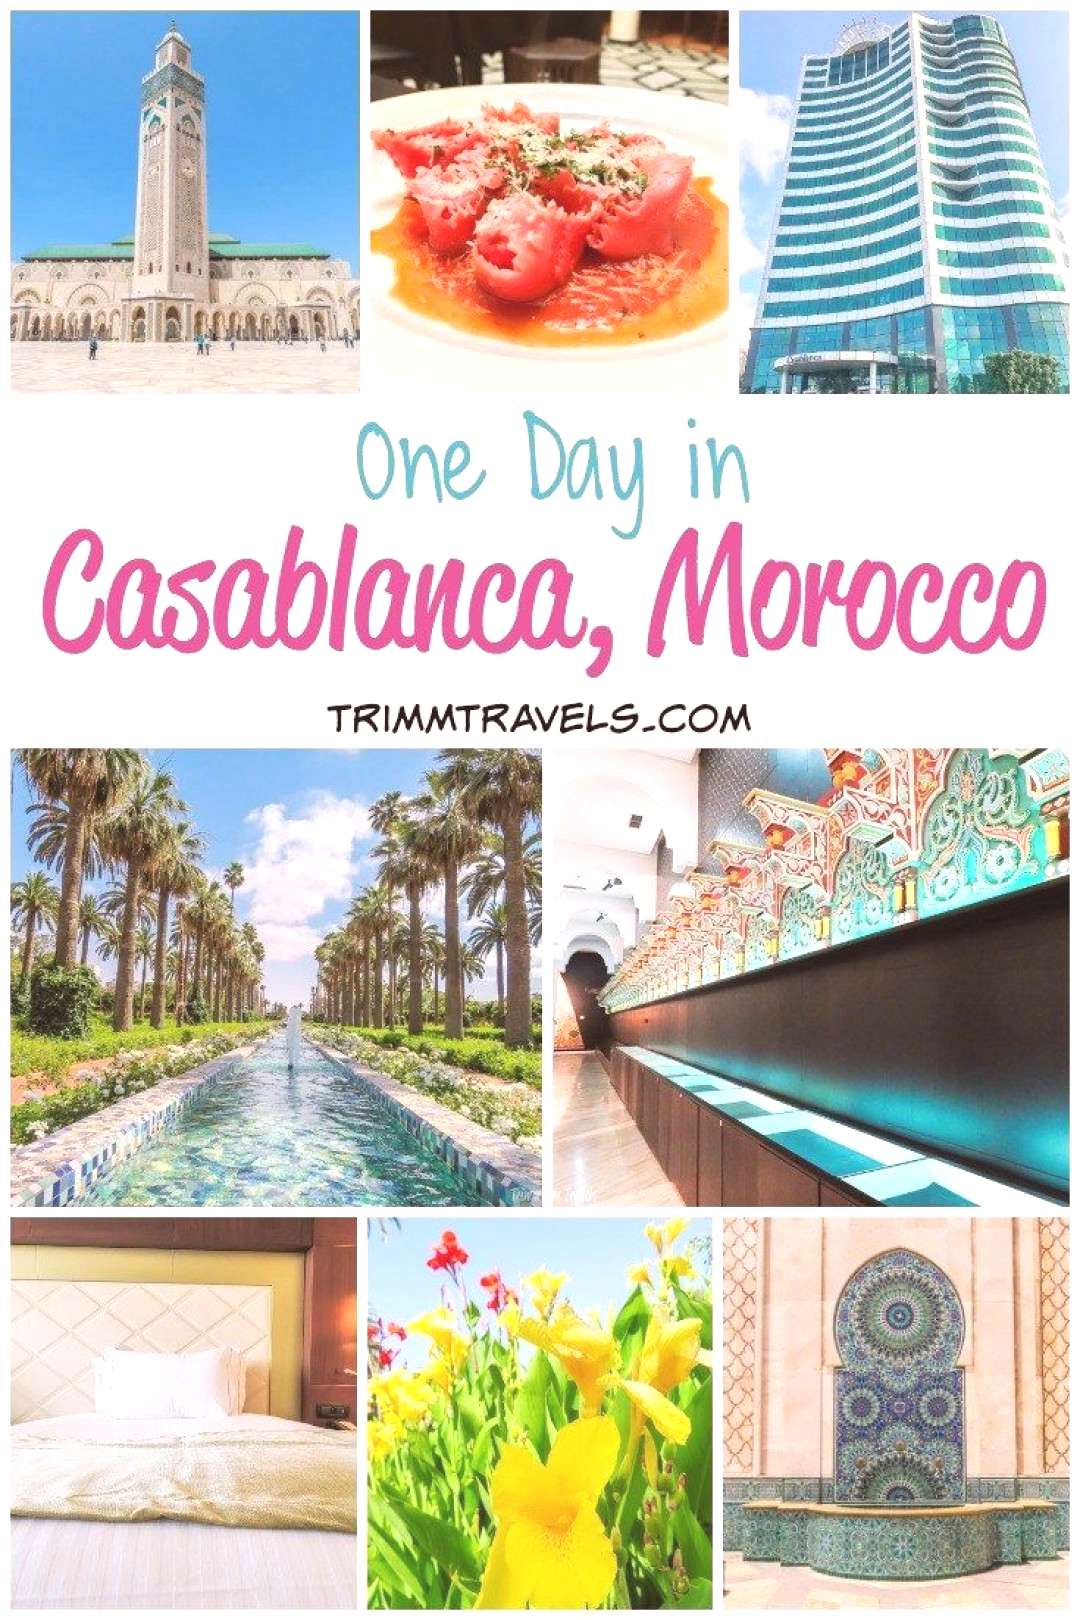 One Day in Casablanca, Morocco Hotel, Highlights amp Historical Eats Are you thinking about visiting